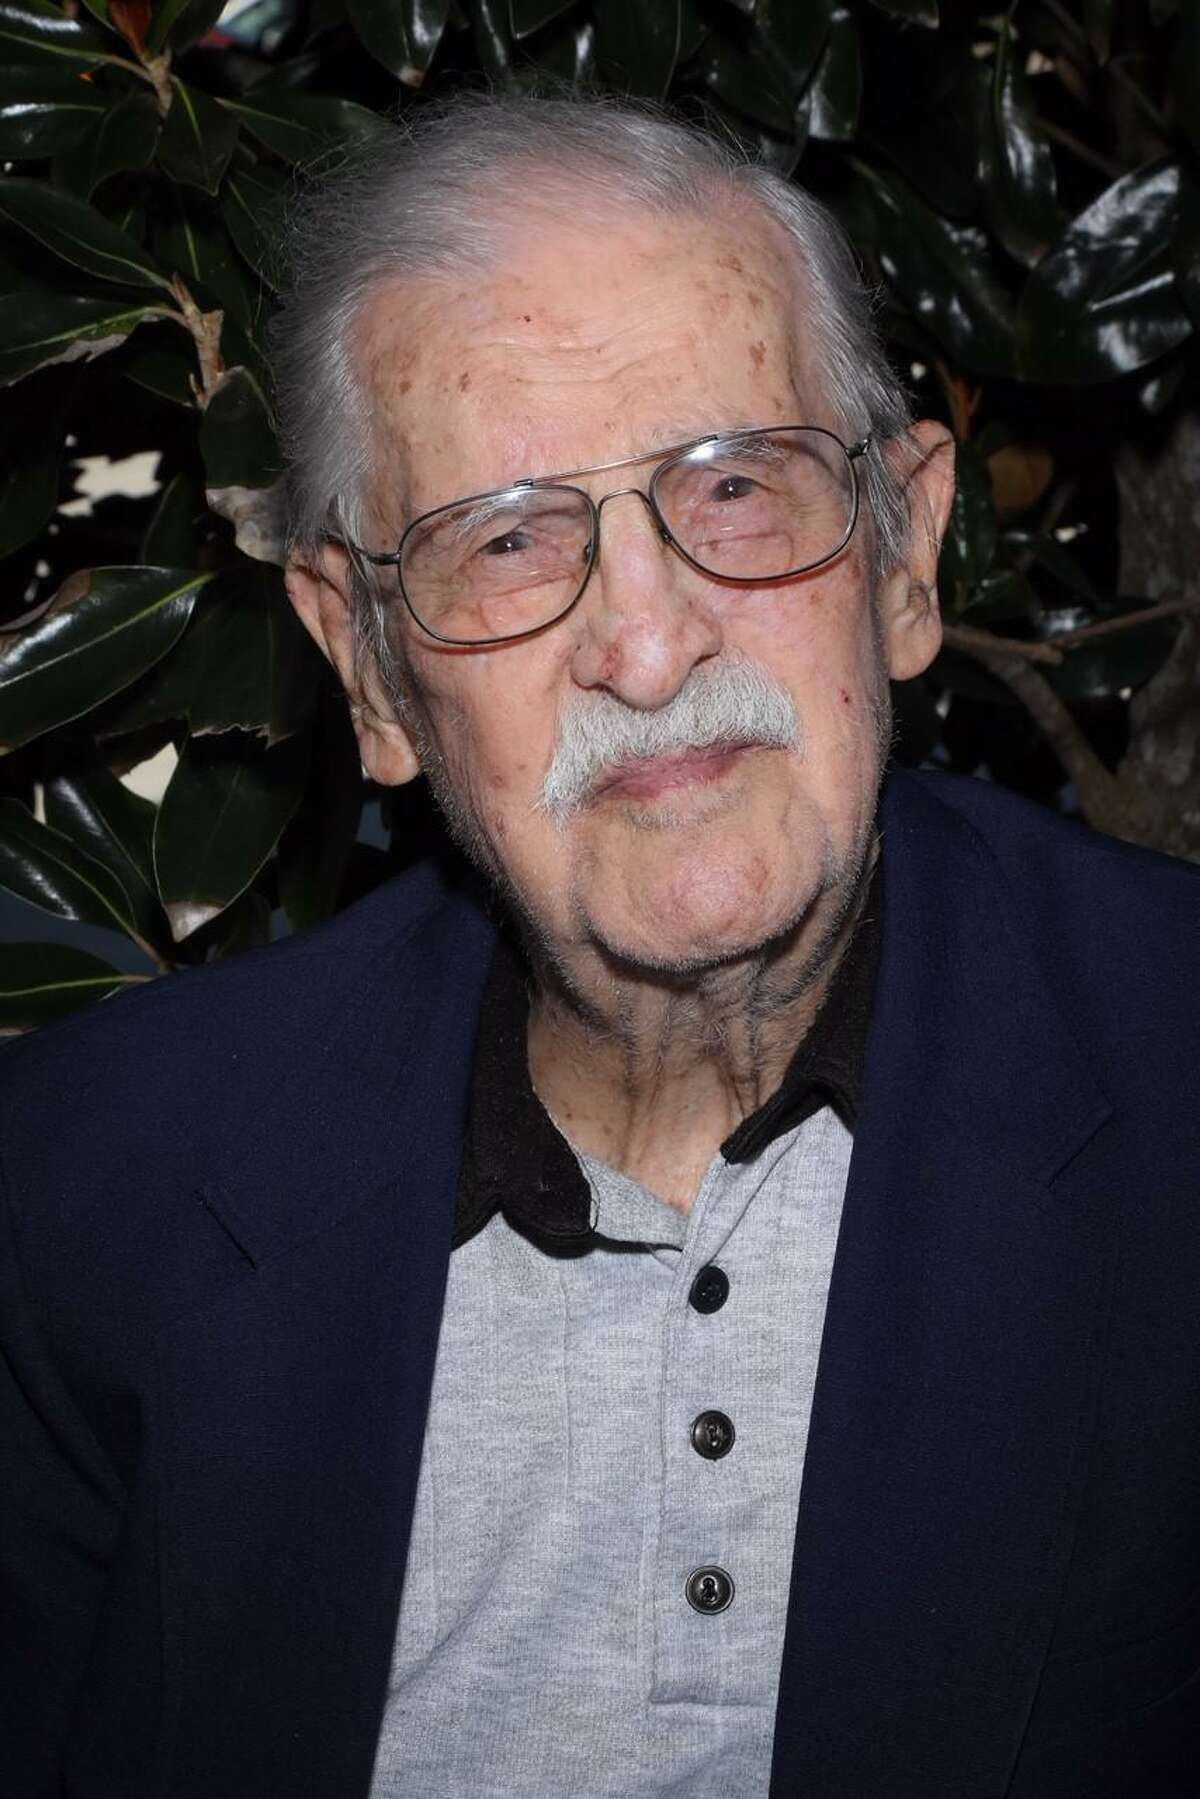 Bob Putnam, of the Montgomery area, turns 102 on June 12, 2020. He was born June 12, 1918 in Bismarck, North Dakota. The Navy veteran has been a part of the Rotary Club of Conroe and is a member of Grace Lutheran Church in Conroe.